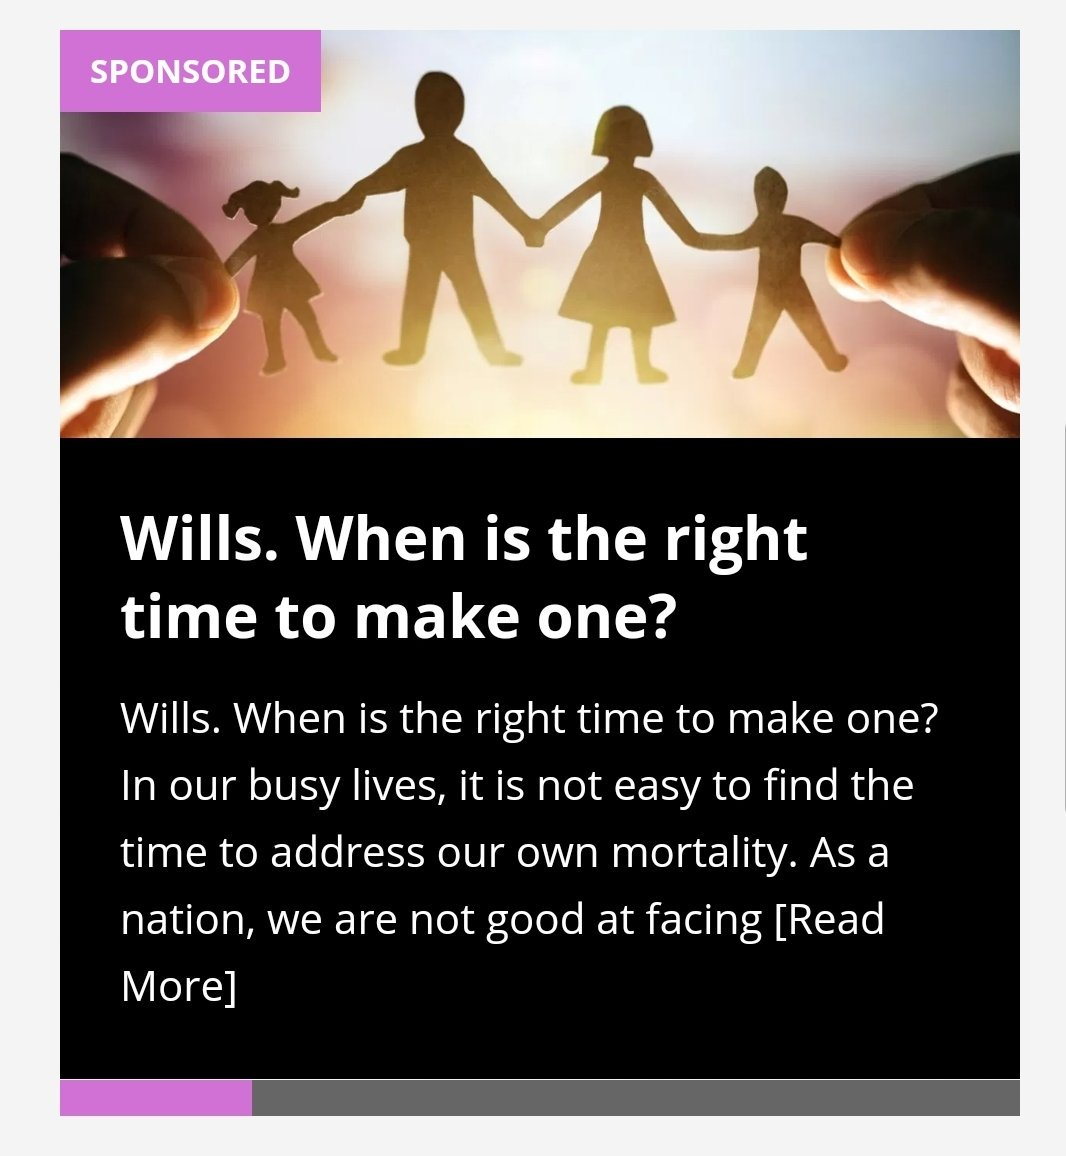 Have you got a will.? Two thirds of the adults in the UK have not got a will which is quite shocking. We have a great piece by @FishersLaw on the reasons we should all have one in place. Get 10% off a will quote:#mamalife  https://www. mamalifemagazine.co.uk/wills-when-is- the-right-time-to-make-one/  …  #dyingmattersweek #LawTwitter<br>http://pic.twitter.com/oBVcNE2Dhg